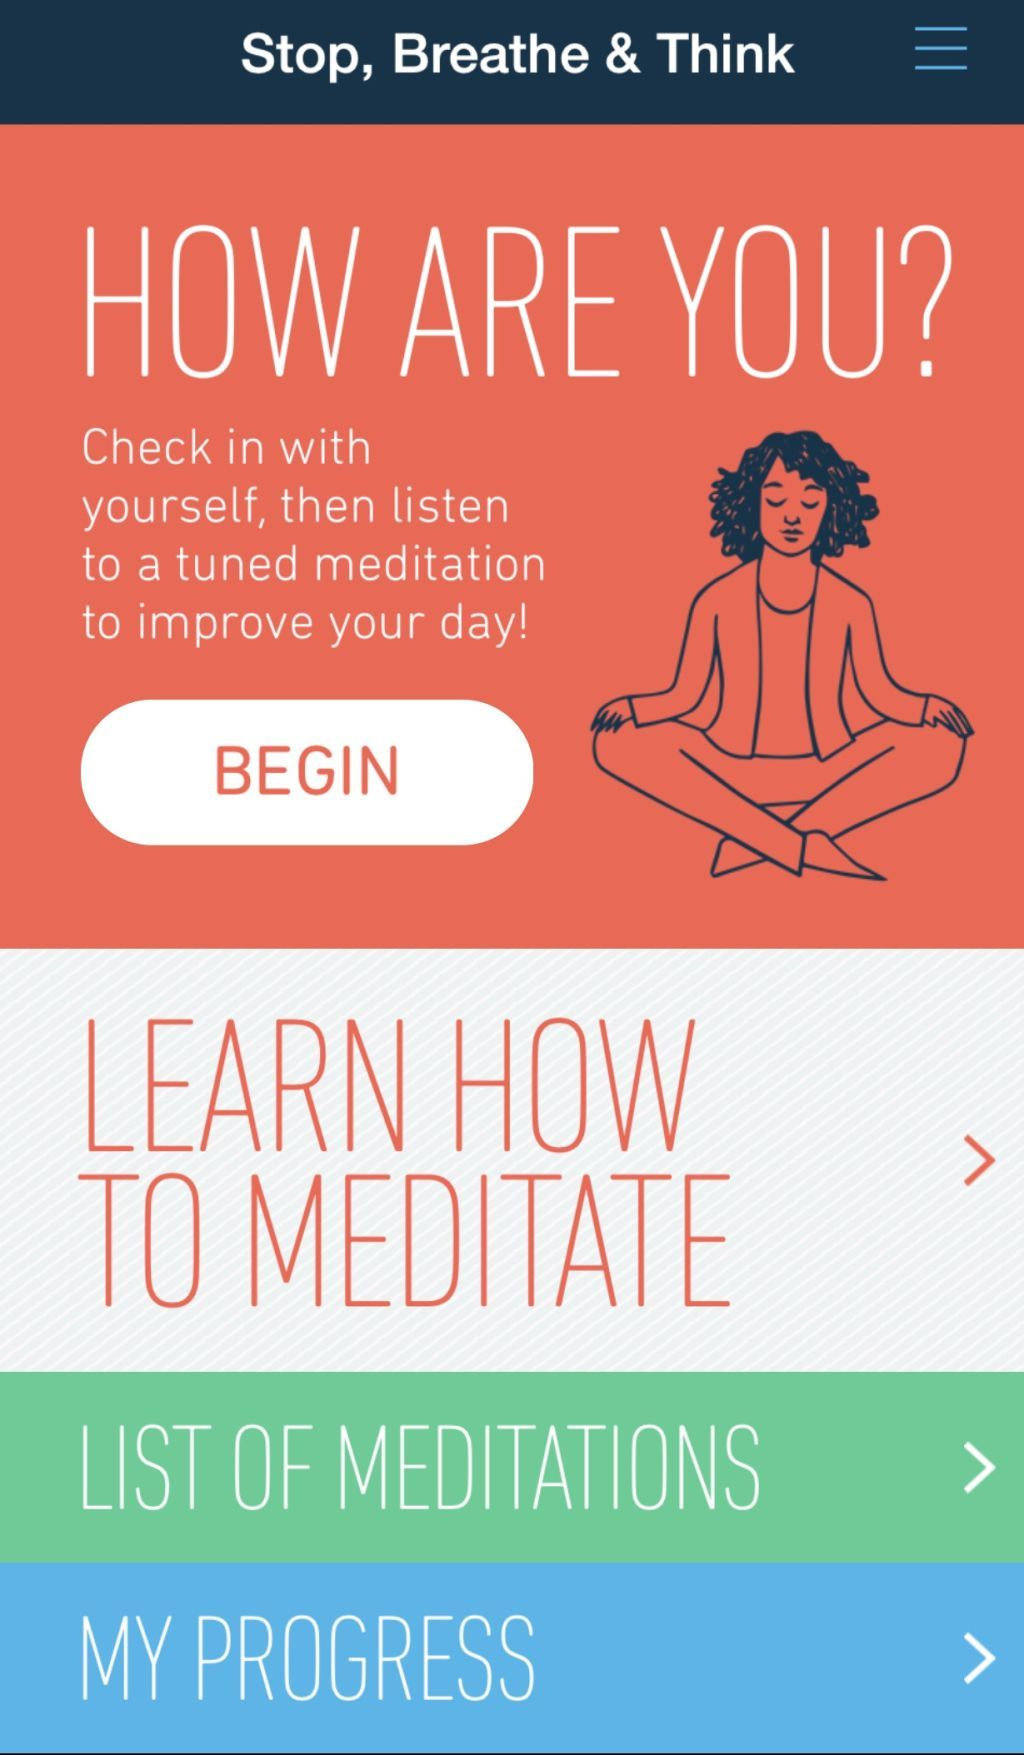 6 meditation and mindfulness apps that will help you feel